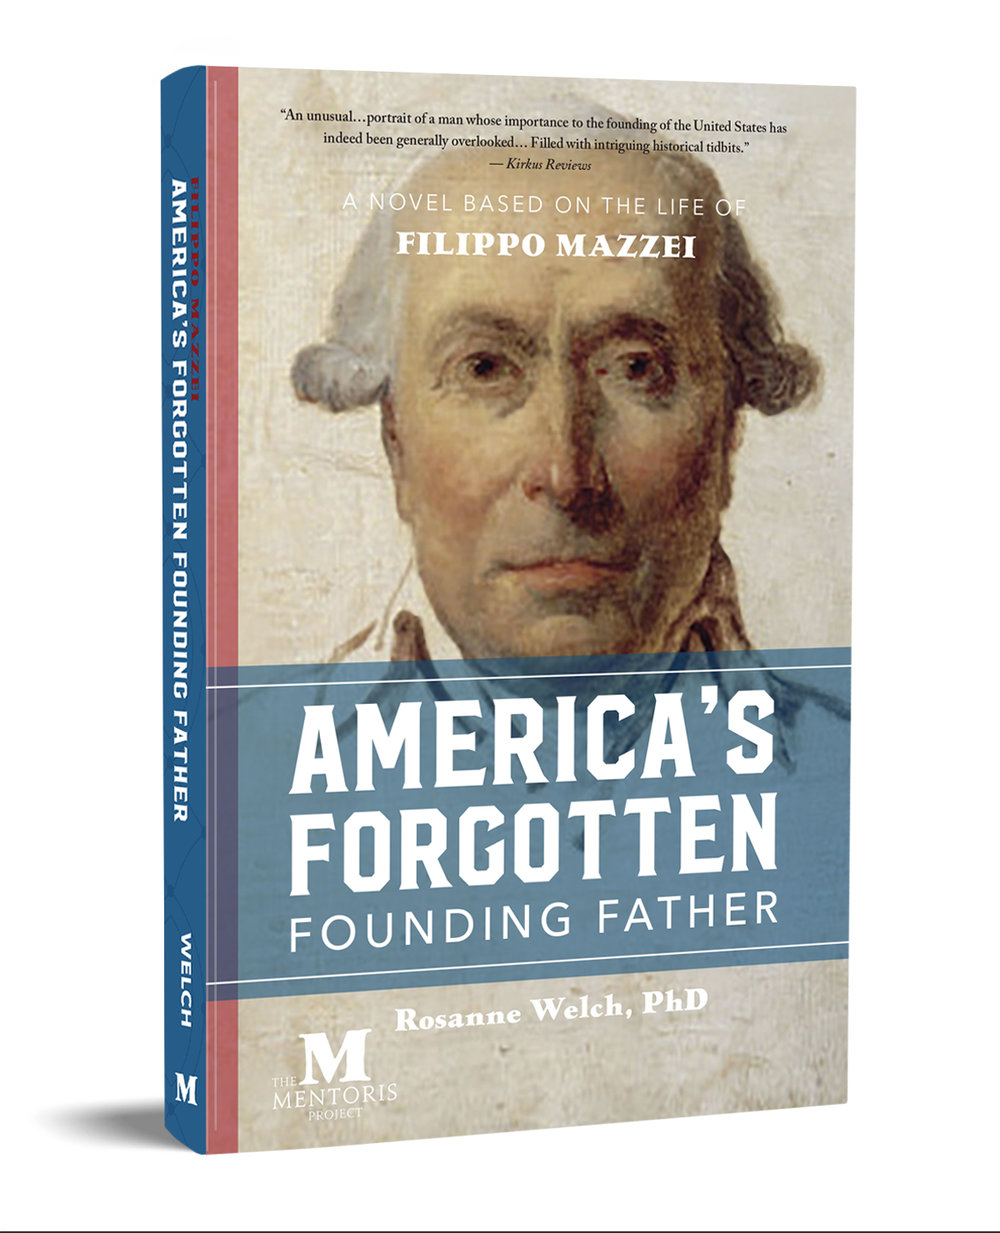 """""""An unusual…portrait  of a man whose importance to the founding of the United States has indeed been generally overlooked…Filled with intriguing historical tidbits.""""  — Kirkus Reviews     """"Foreign intrigue  notwithstanding,  America's Forgotten Founding Father  is a book whose timing could not be better on a domestic level.""""  —Angelus News"""